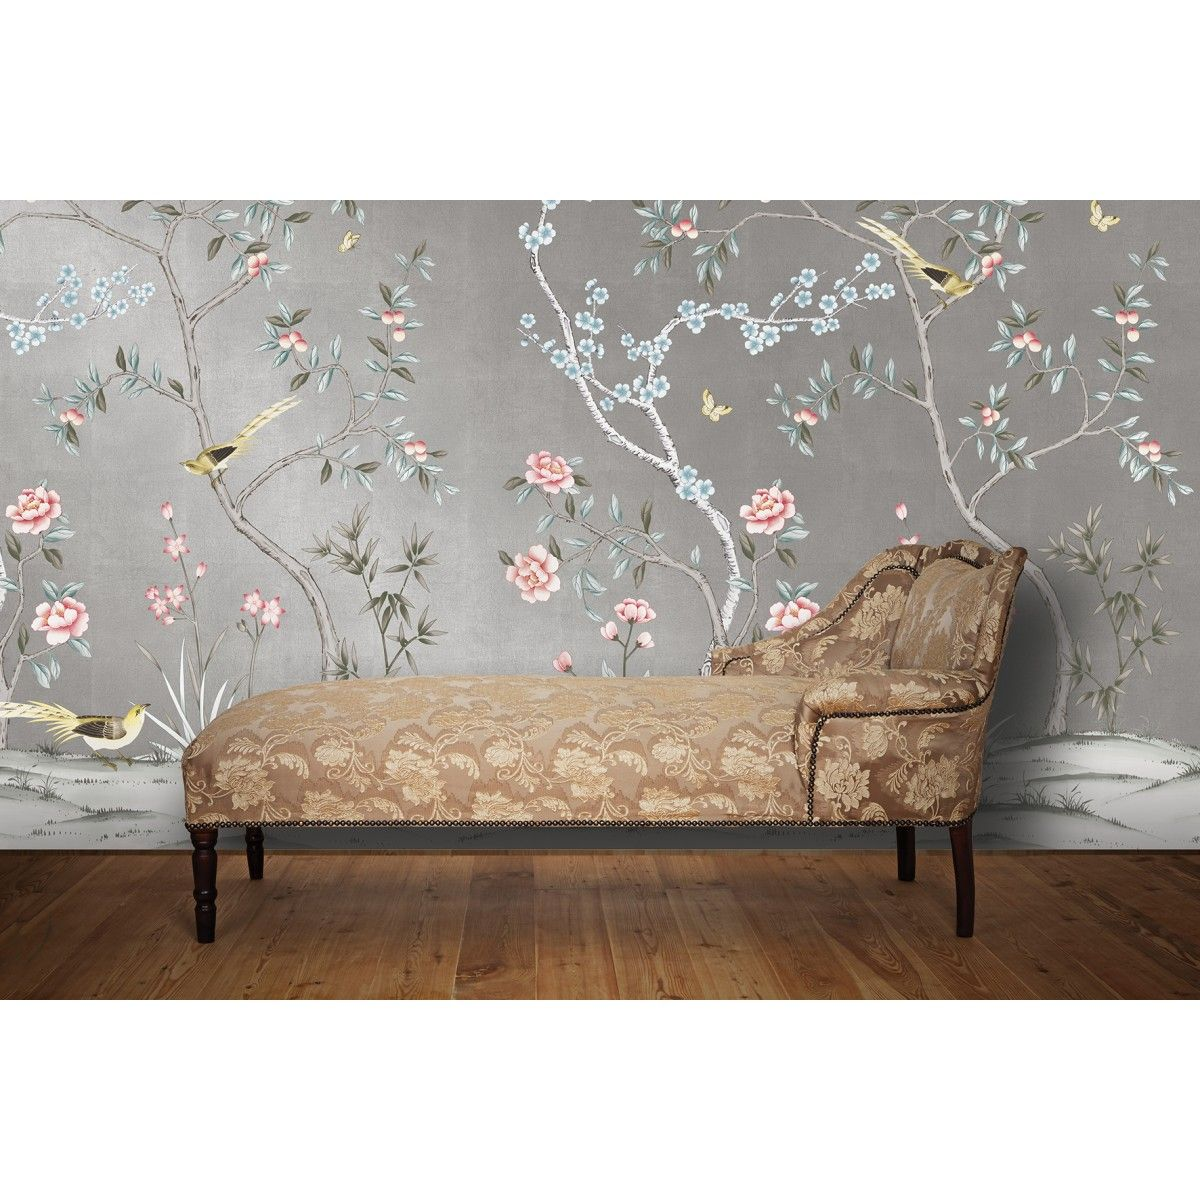 CHINOISERIE Garden Metallic Silver Chinoiserie wallpaper